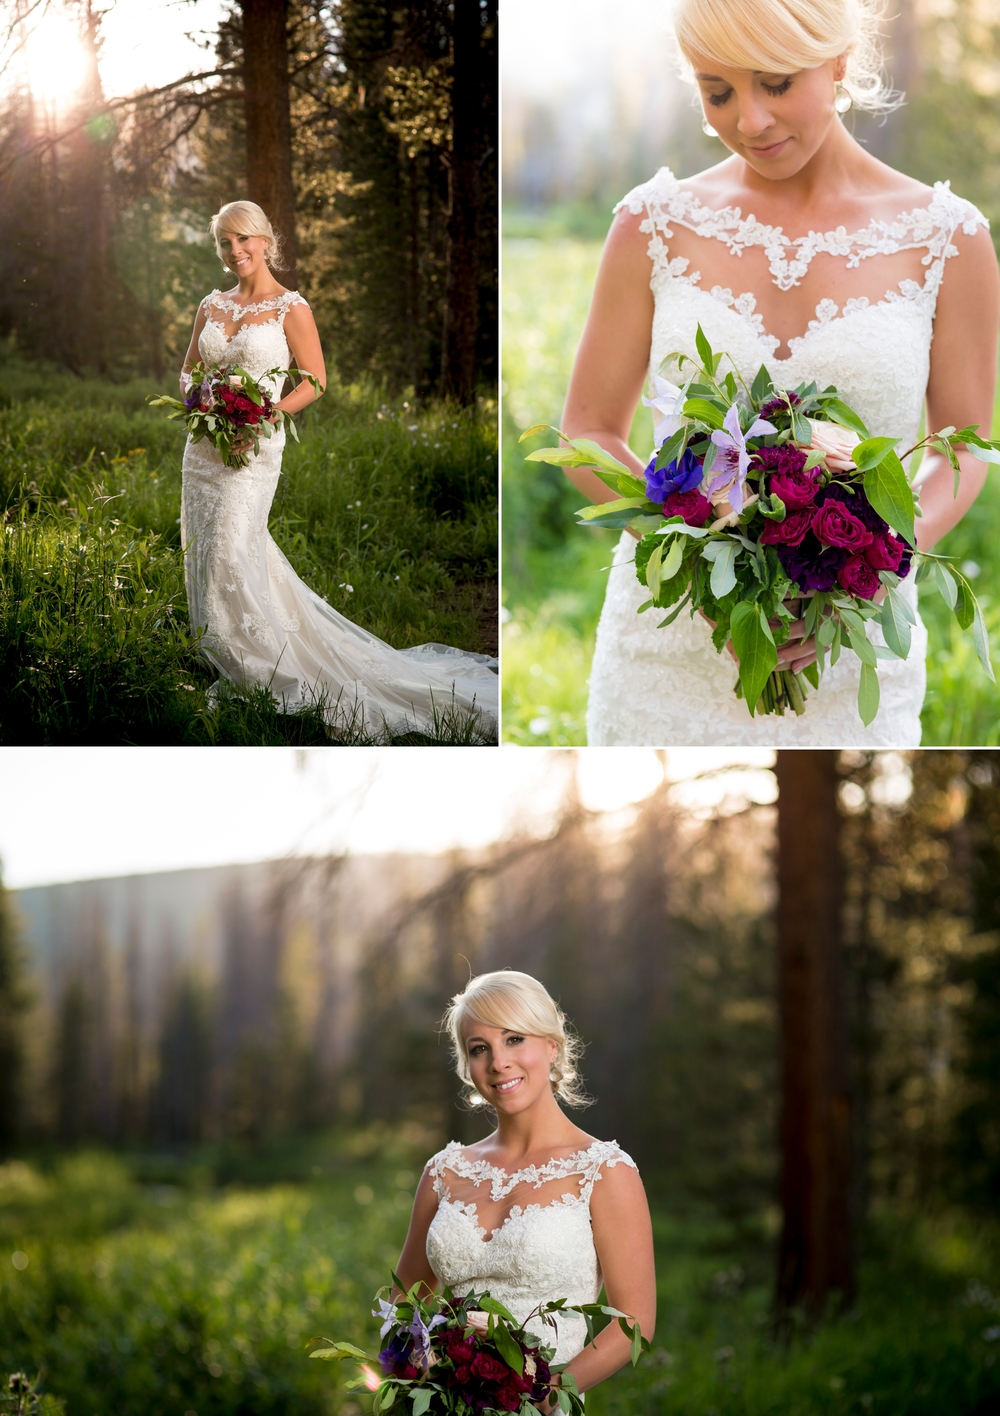 Piney River Ranch, Vail, CO - Dress from Dora Grace Bridal by Miss Stella York